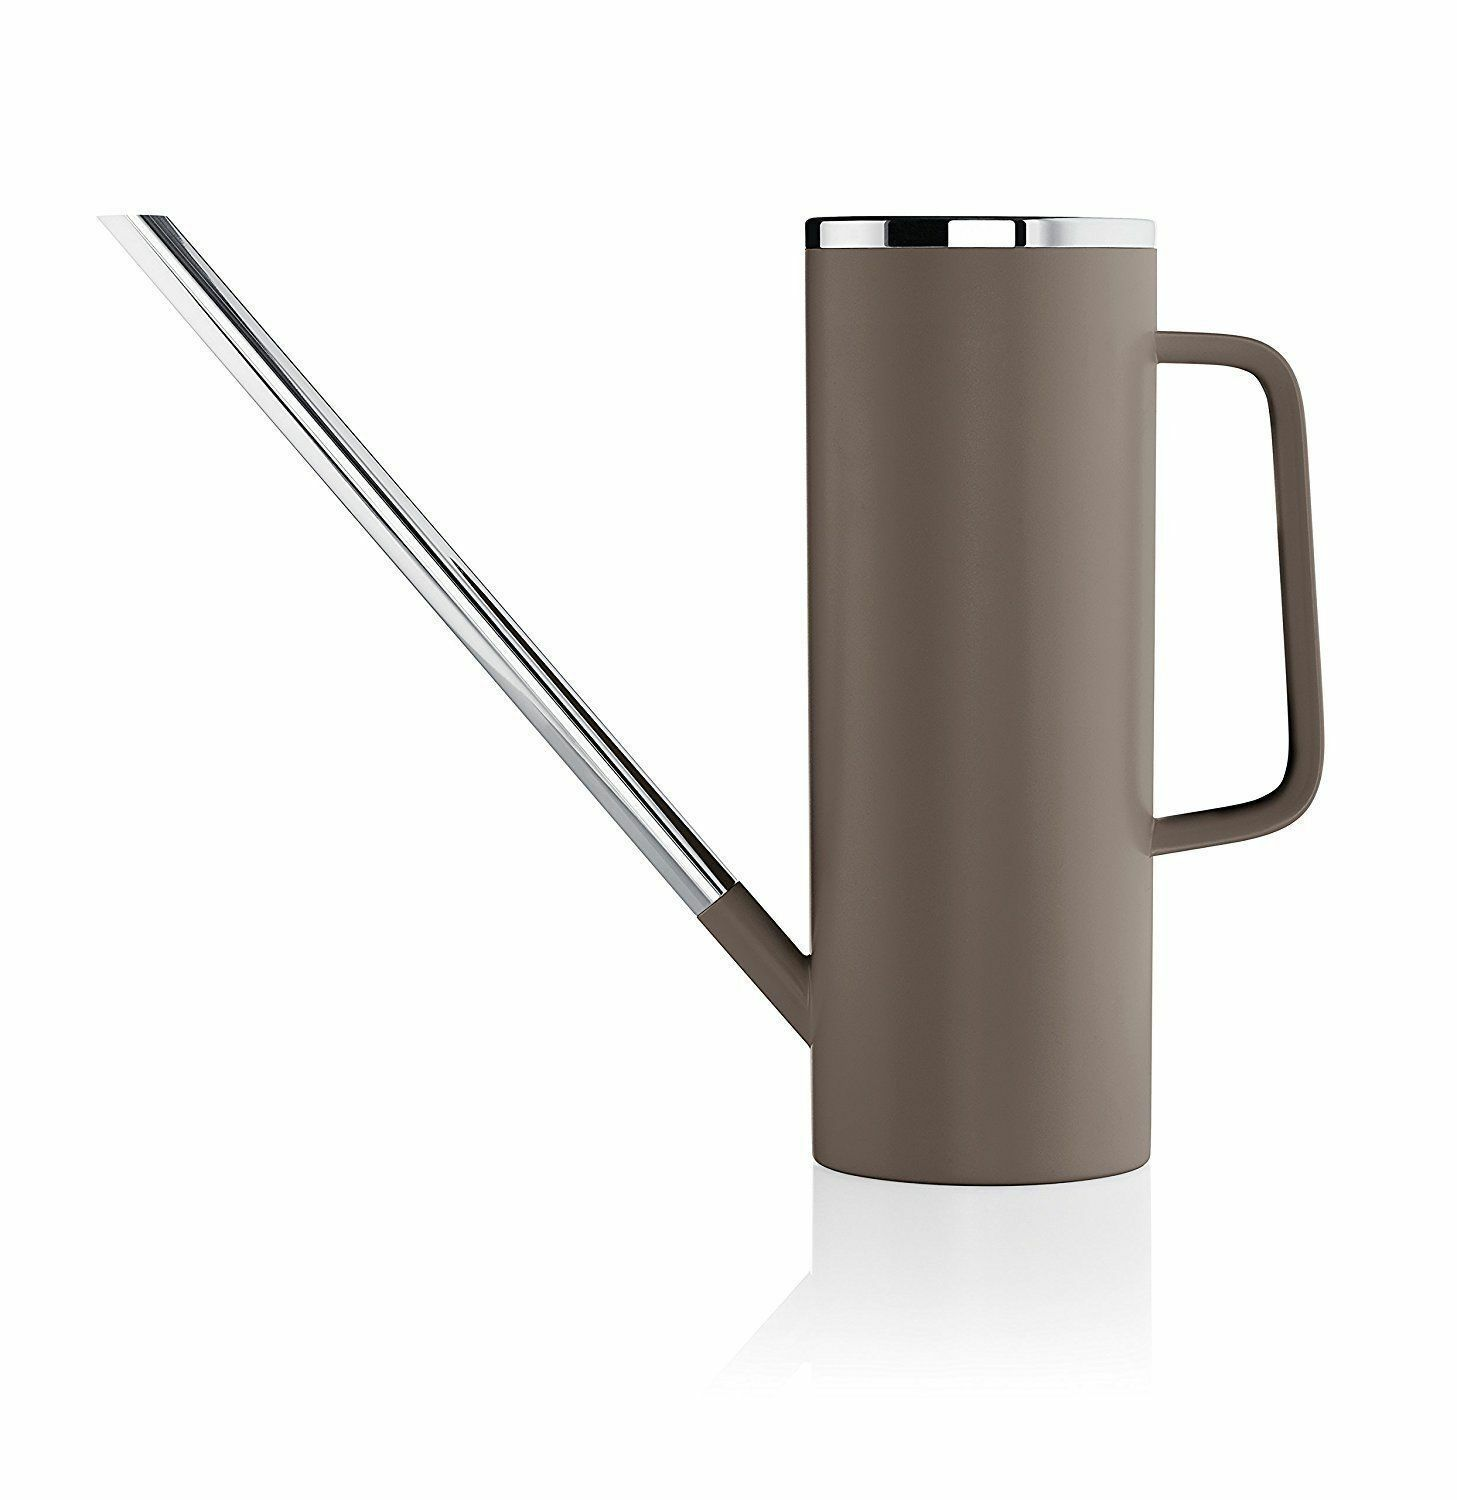 Blomus Limbo Stainless Steel Watering Can, Taupe 1.5 L Indoor/Outdoor Garden